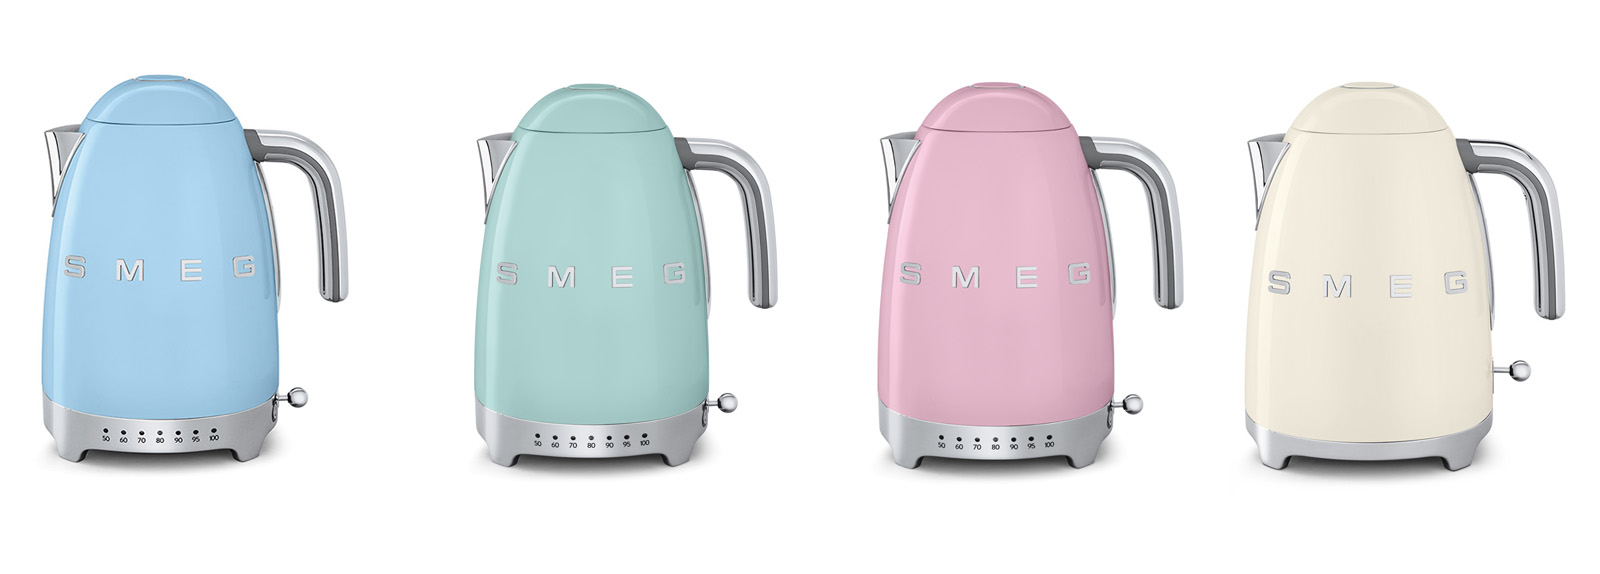 Meet The New Smeg 50 S Retro Style Small Home Appliances